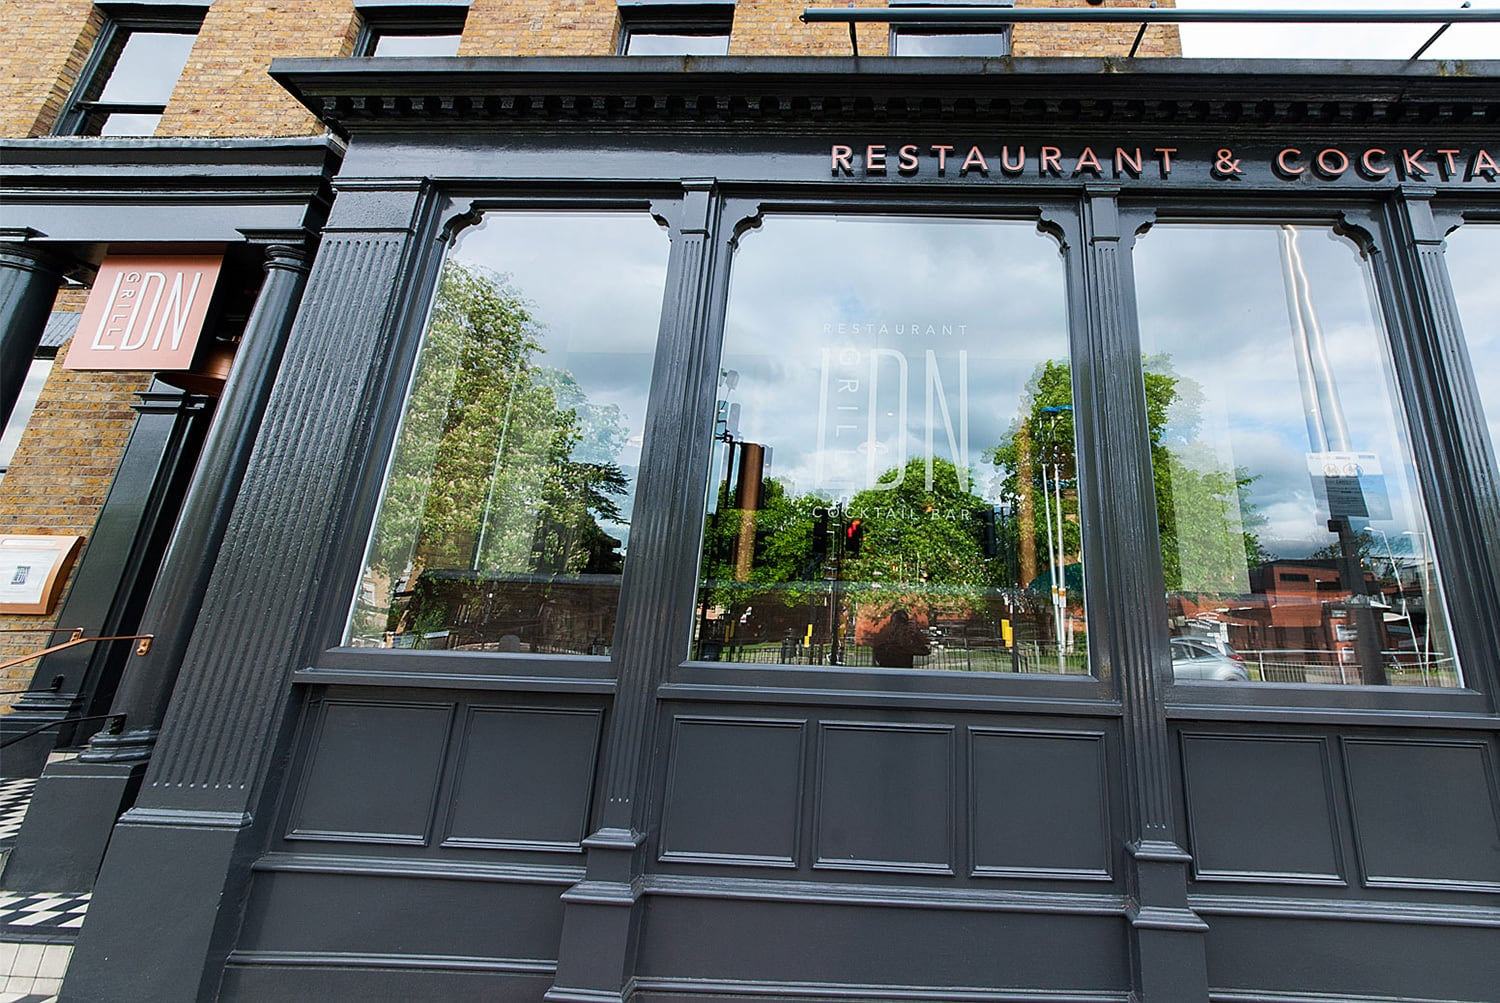 Exterior branding showing illuminated sign and window decal of LDN Grill Logo design